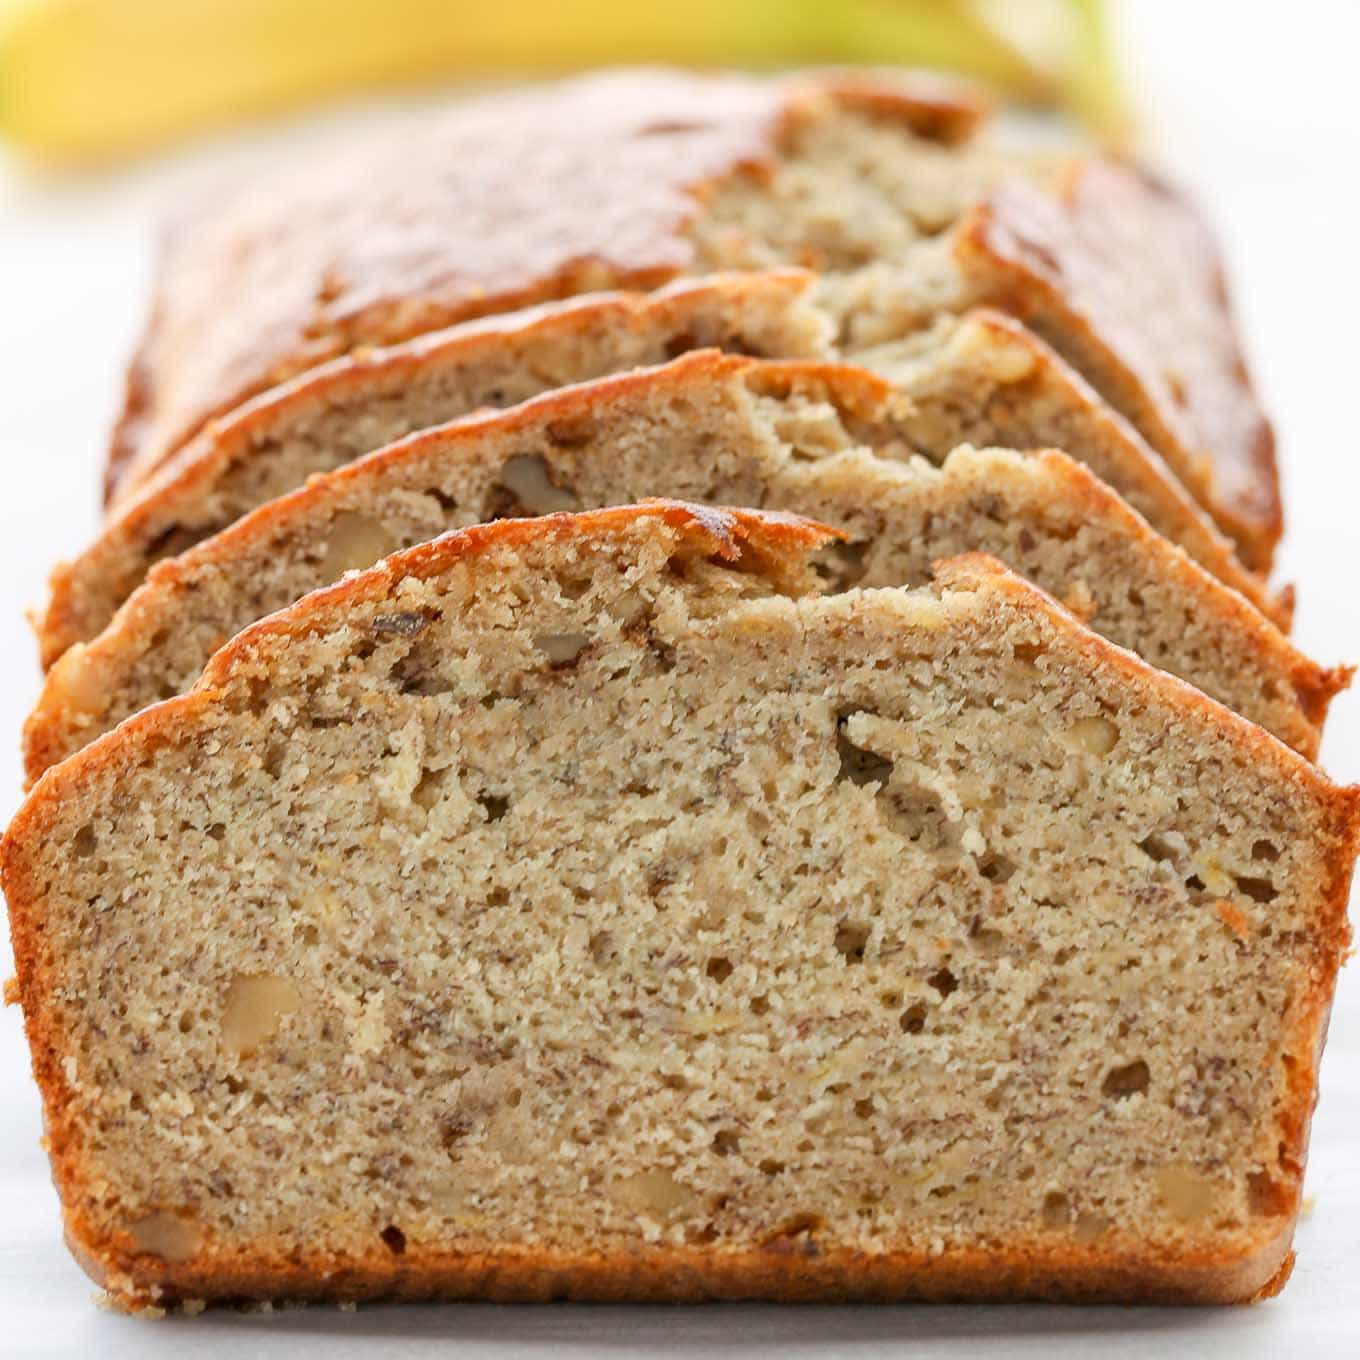 banana bread recipe recipes moist serpentine front nut classic bake easy cake antique dressers pumpkin